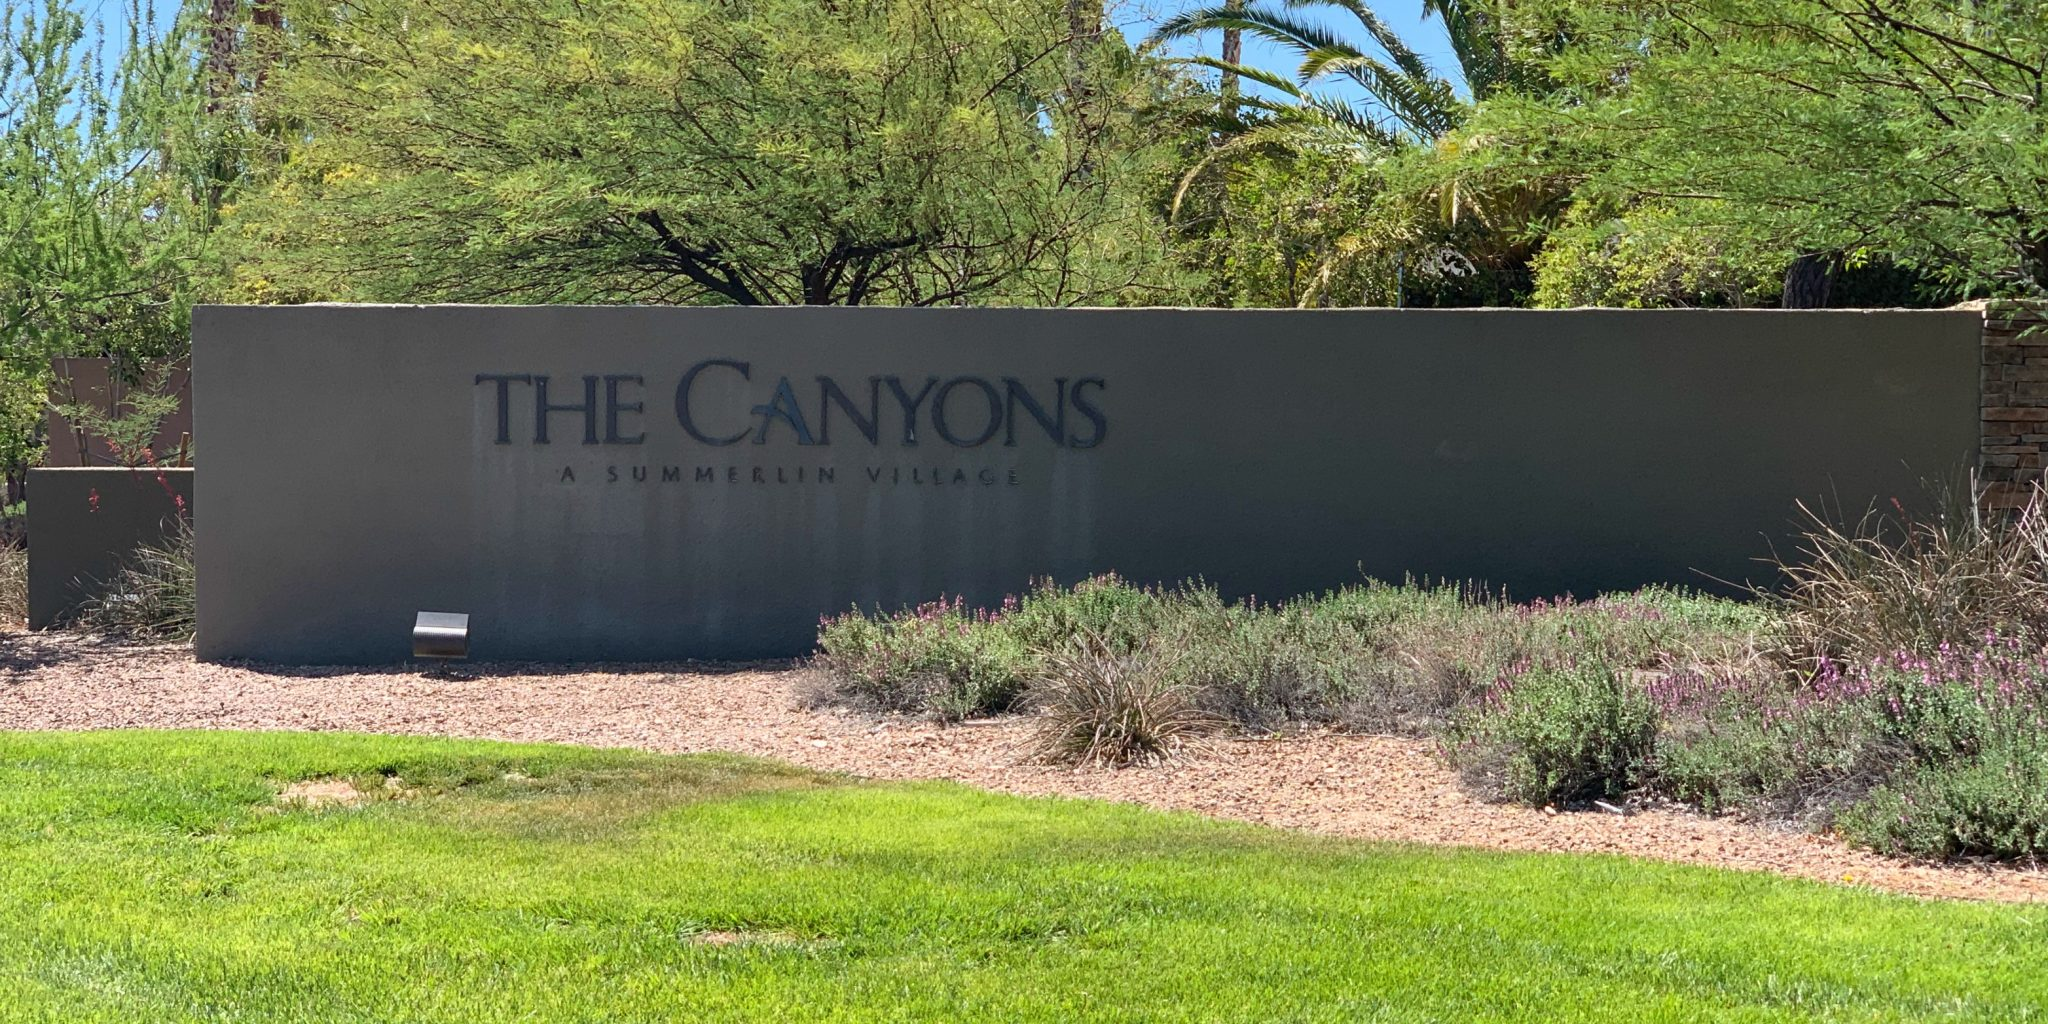 The Canyons Village